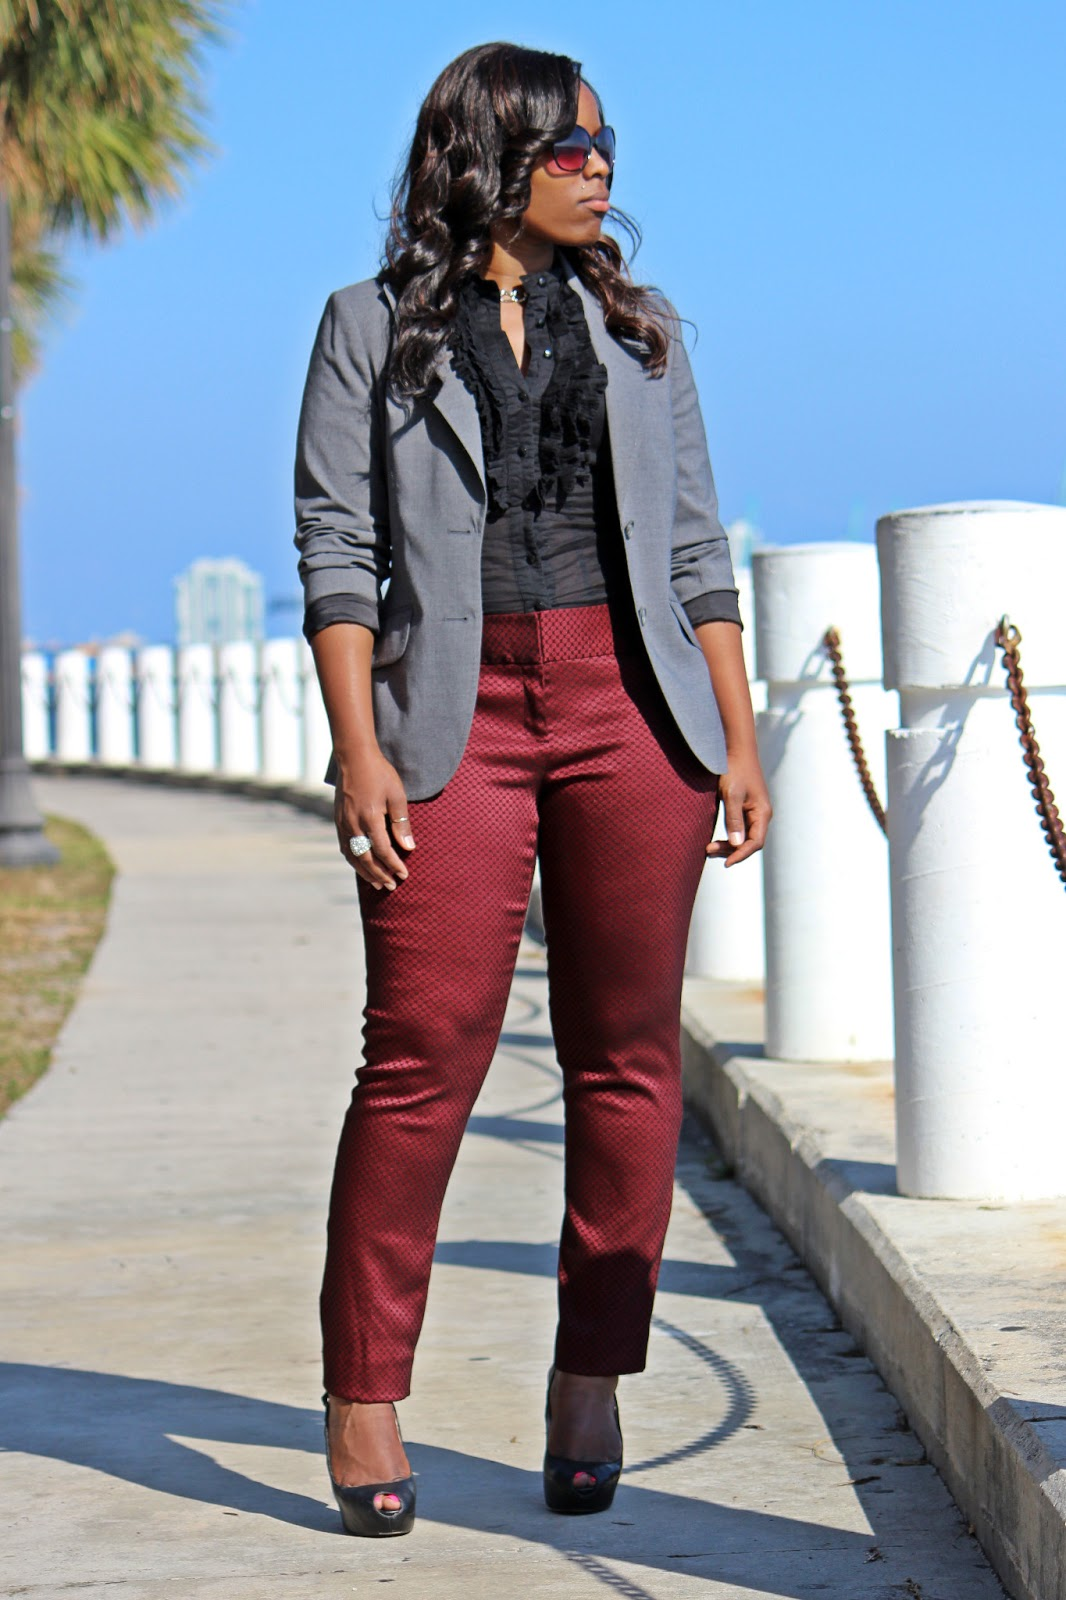 Luxury Left Big Star QuotAlexquot Skinny Jeans In Burgundy 89 At Nordstrom Here